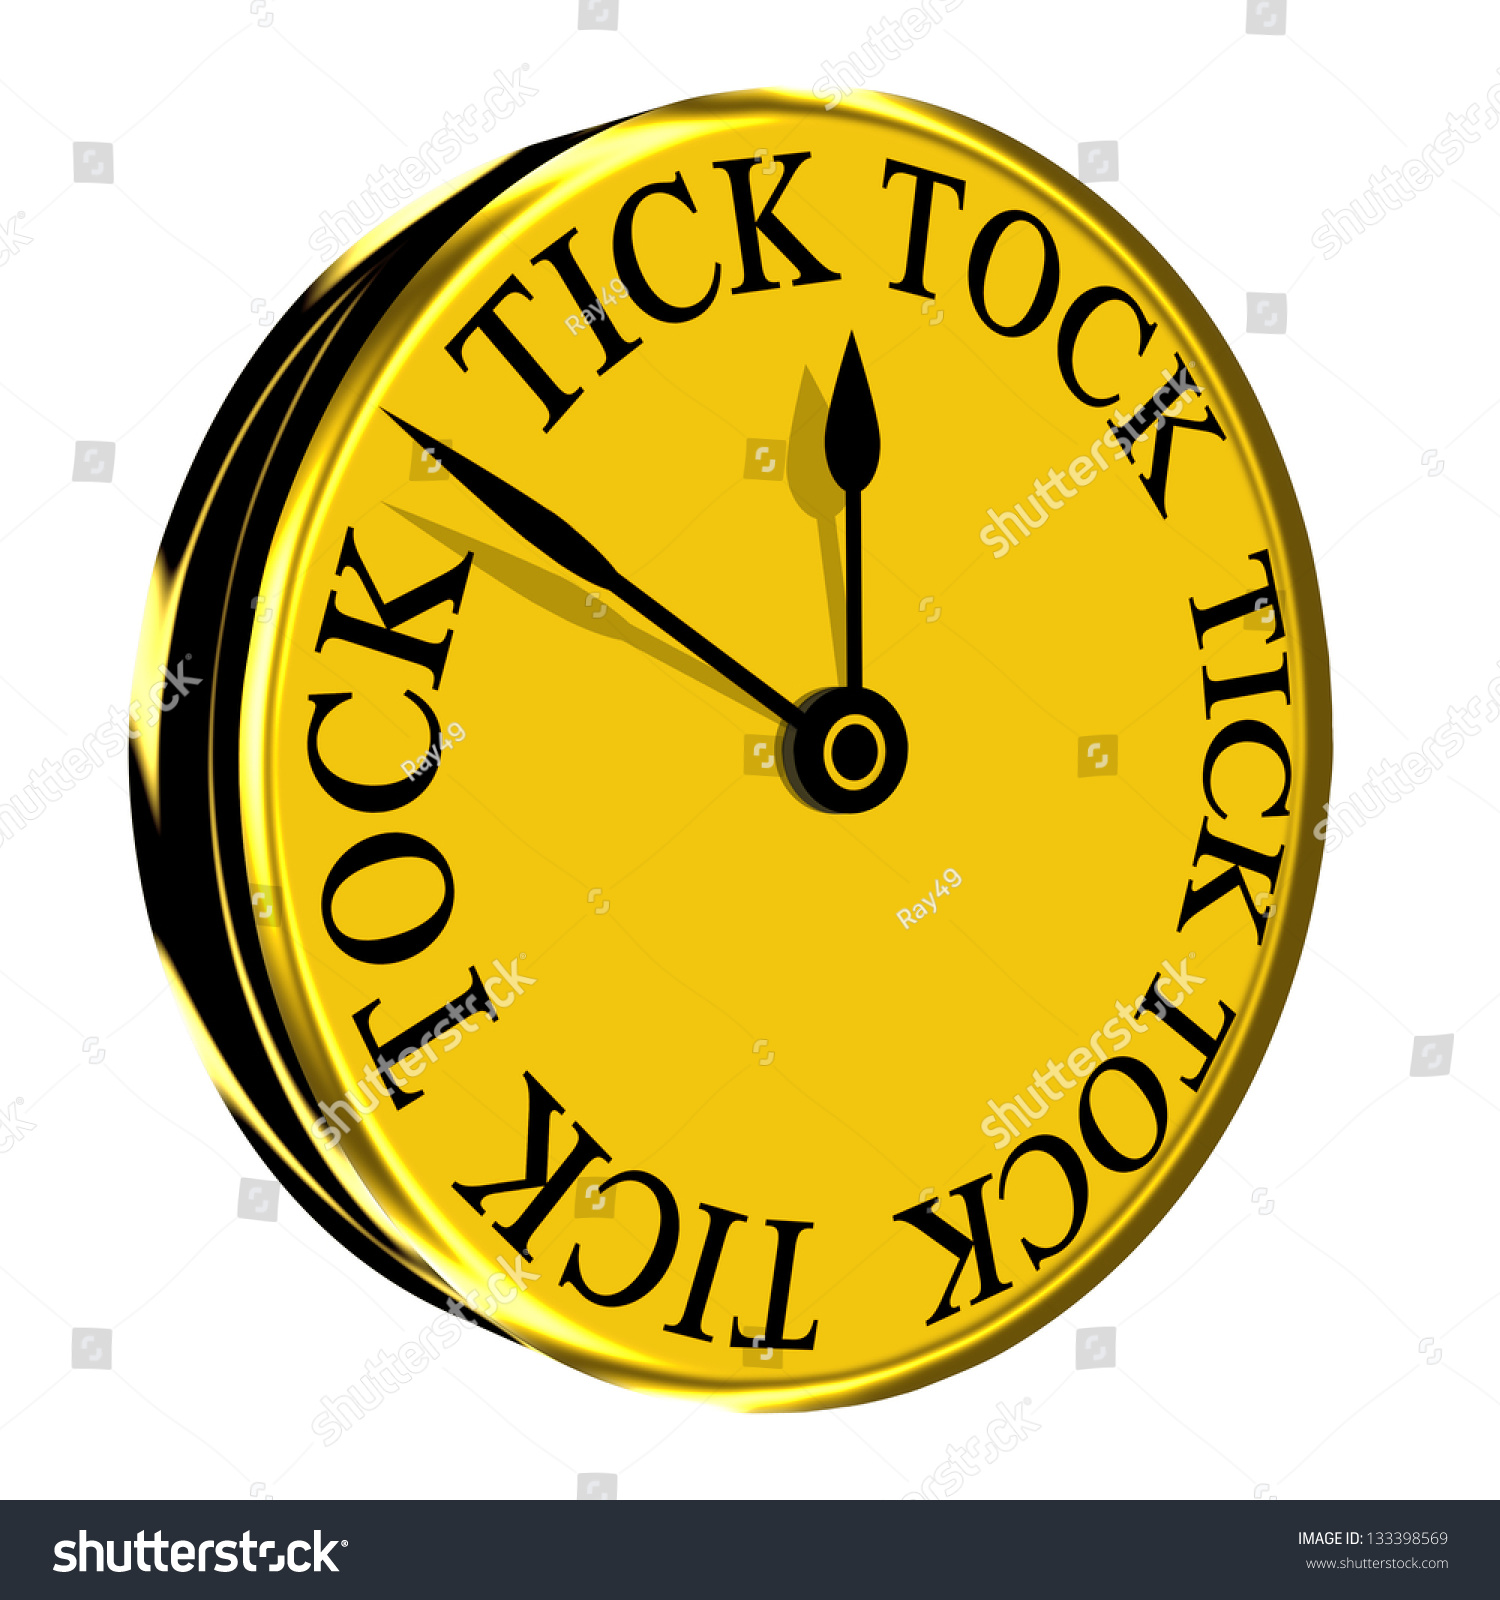 Gold Colored Wall Clock Modern Tick Stock Illustration 133398569 ...